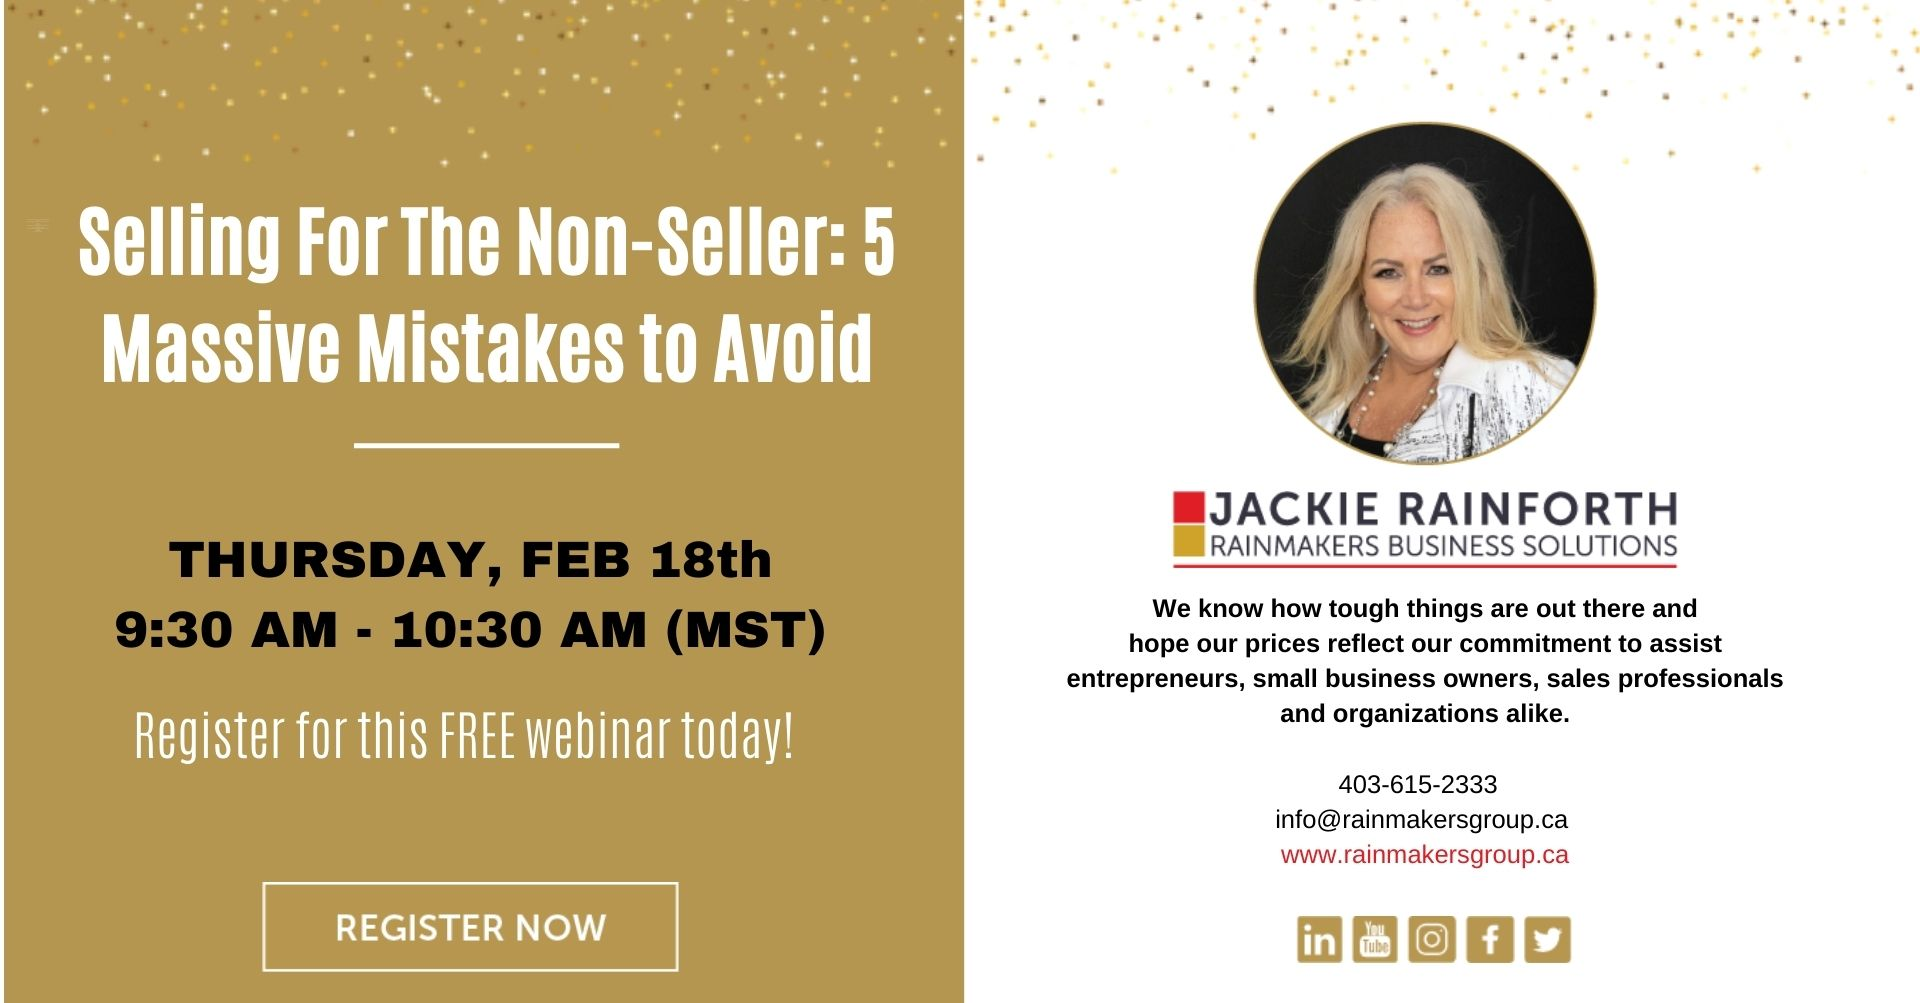 free webinar-selling mistakes to avoid, february 18